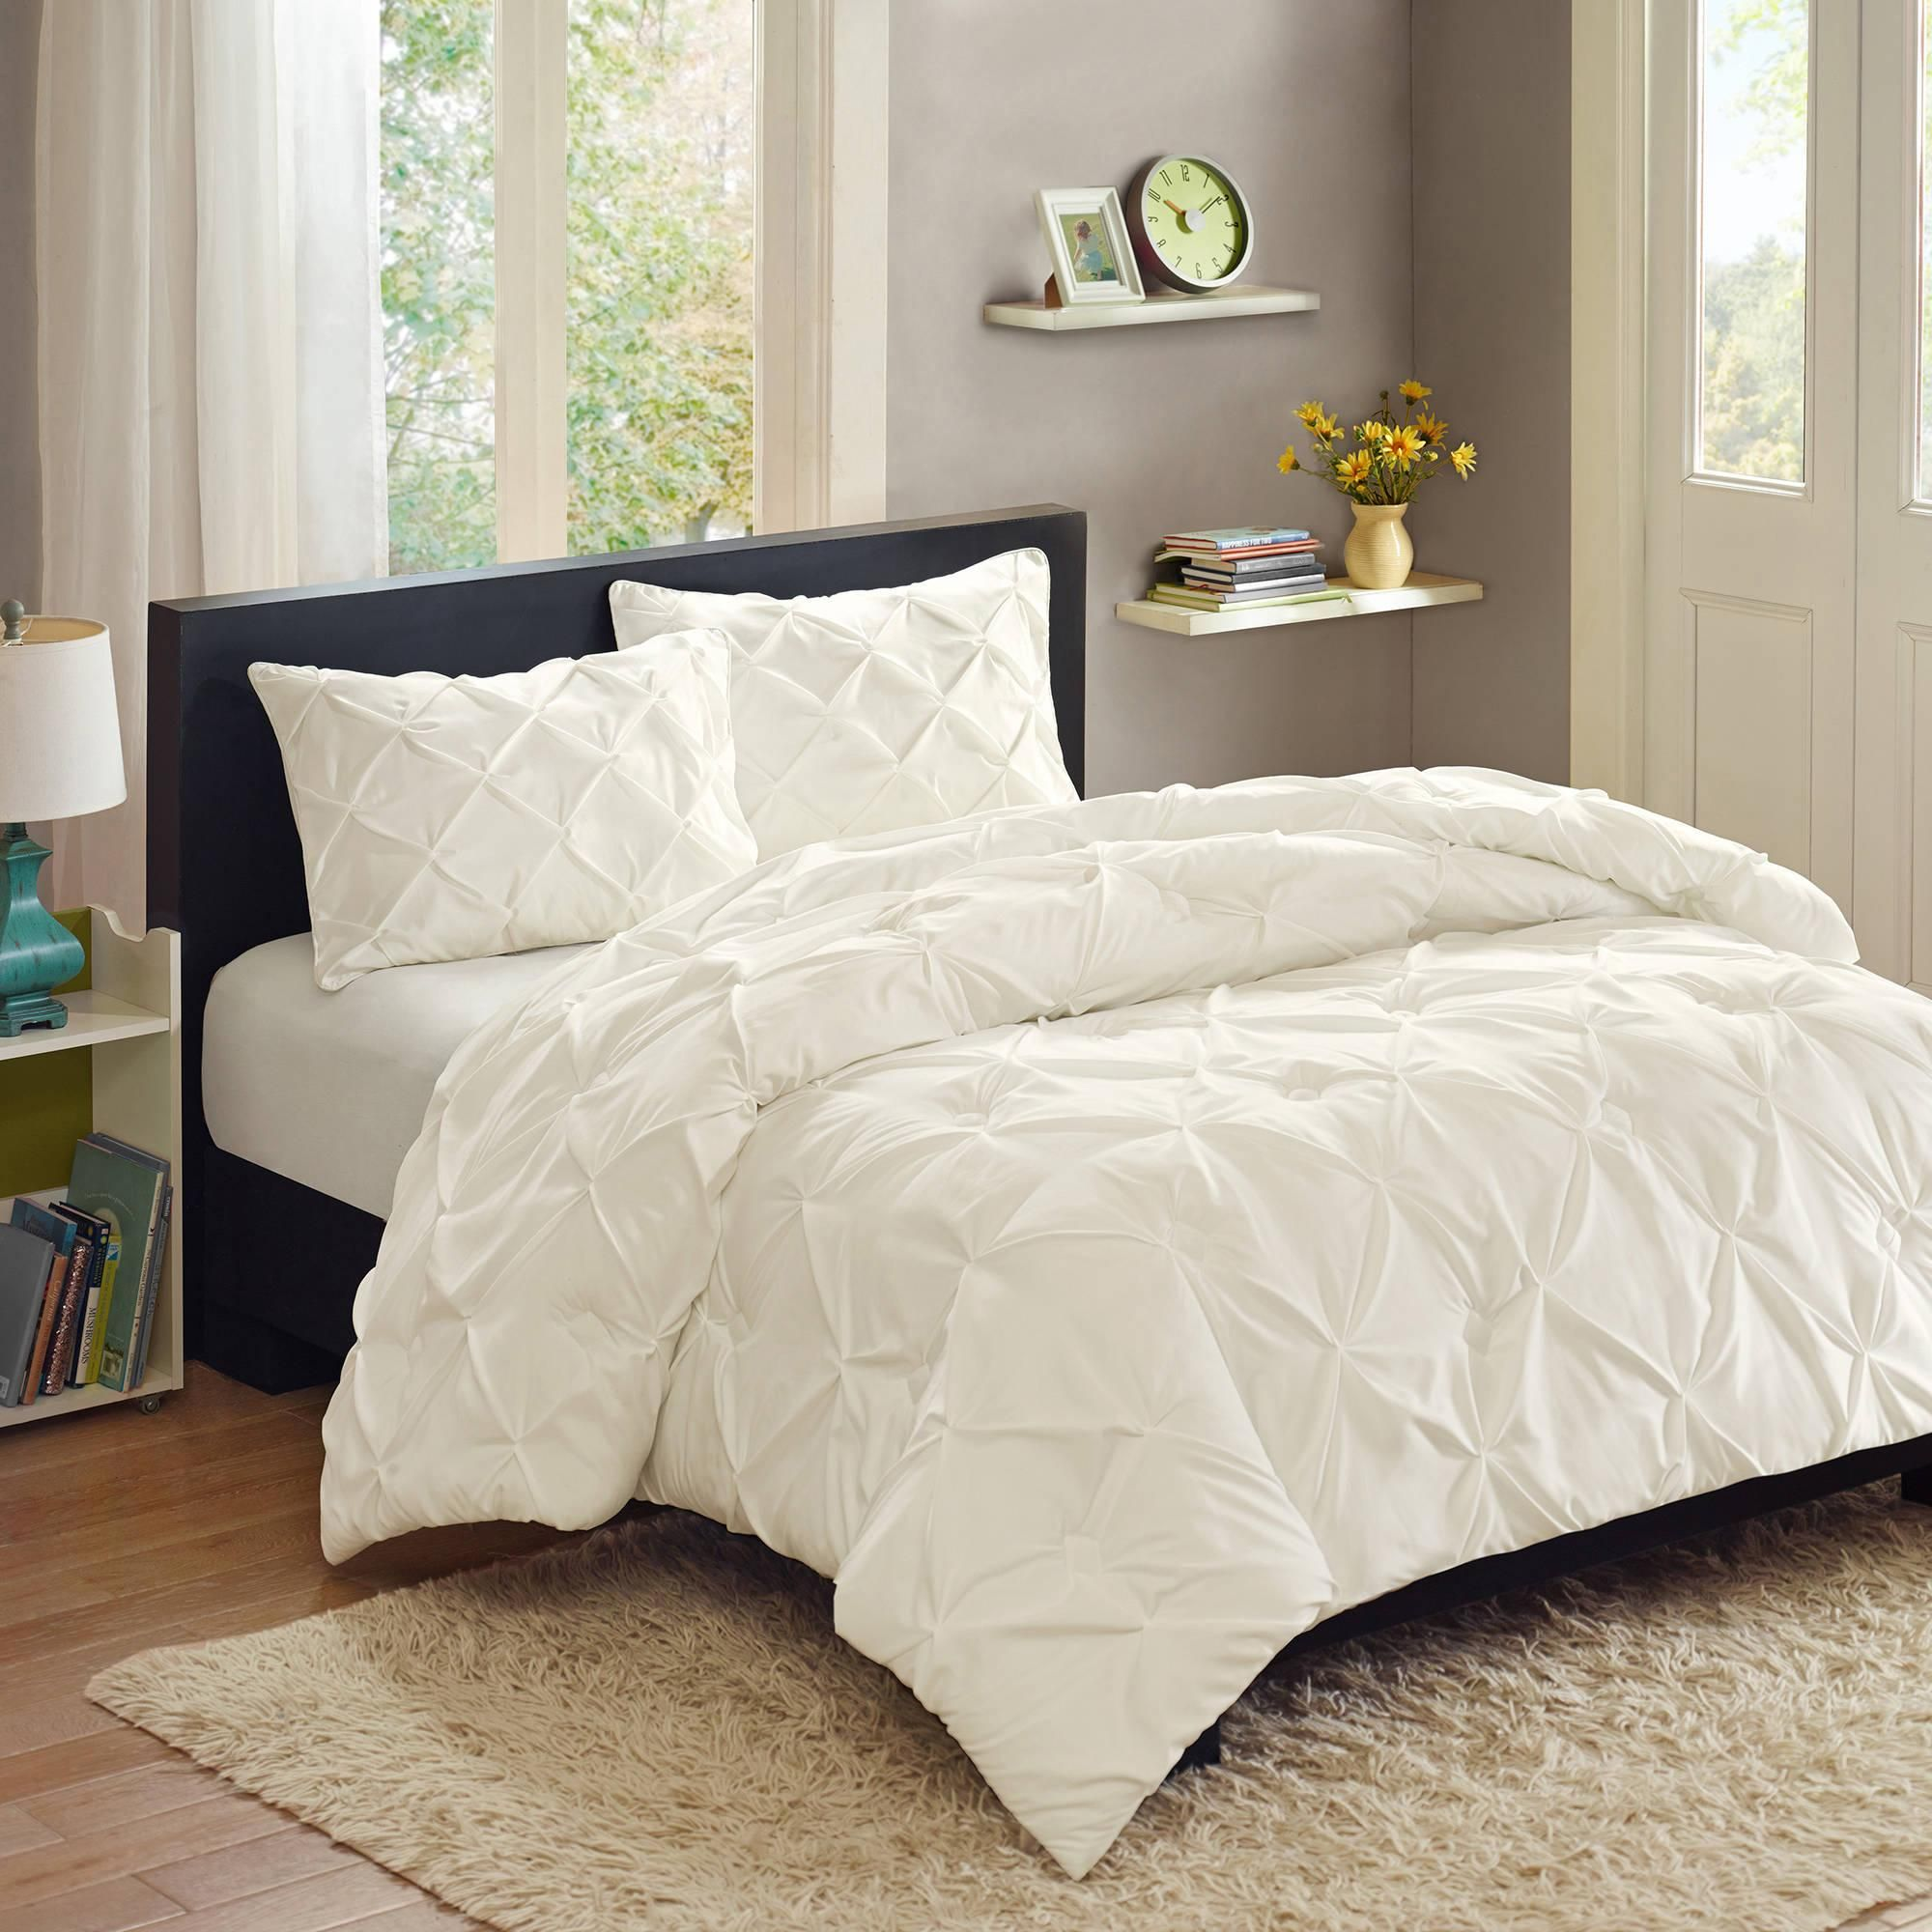 Better Homes And Gardens Pintuck Bedding Comforter Mini Set   Walmart.com